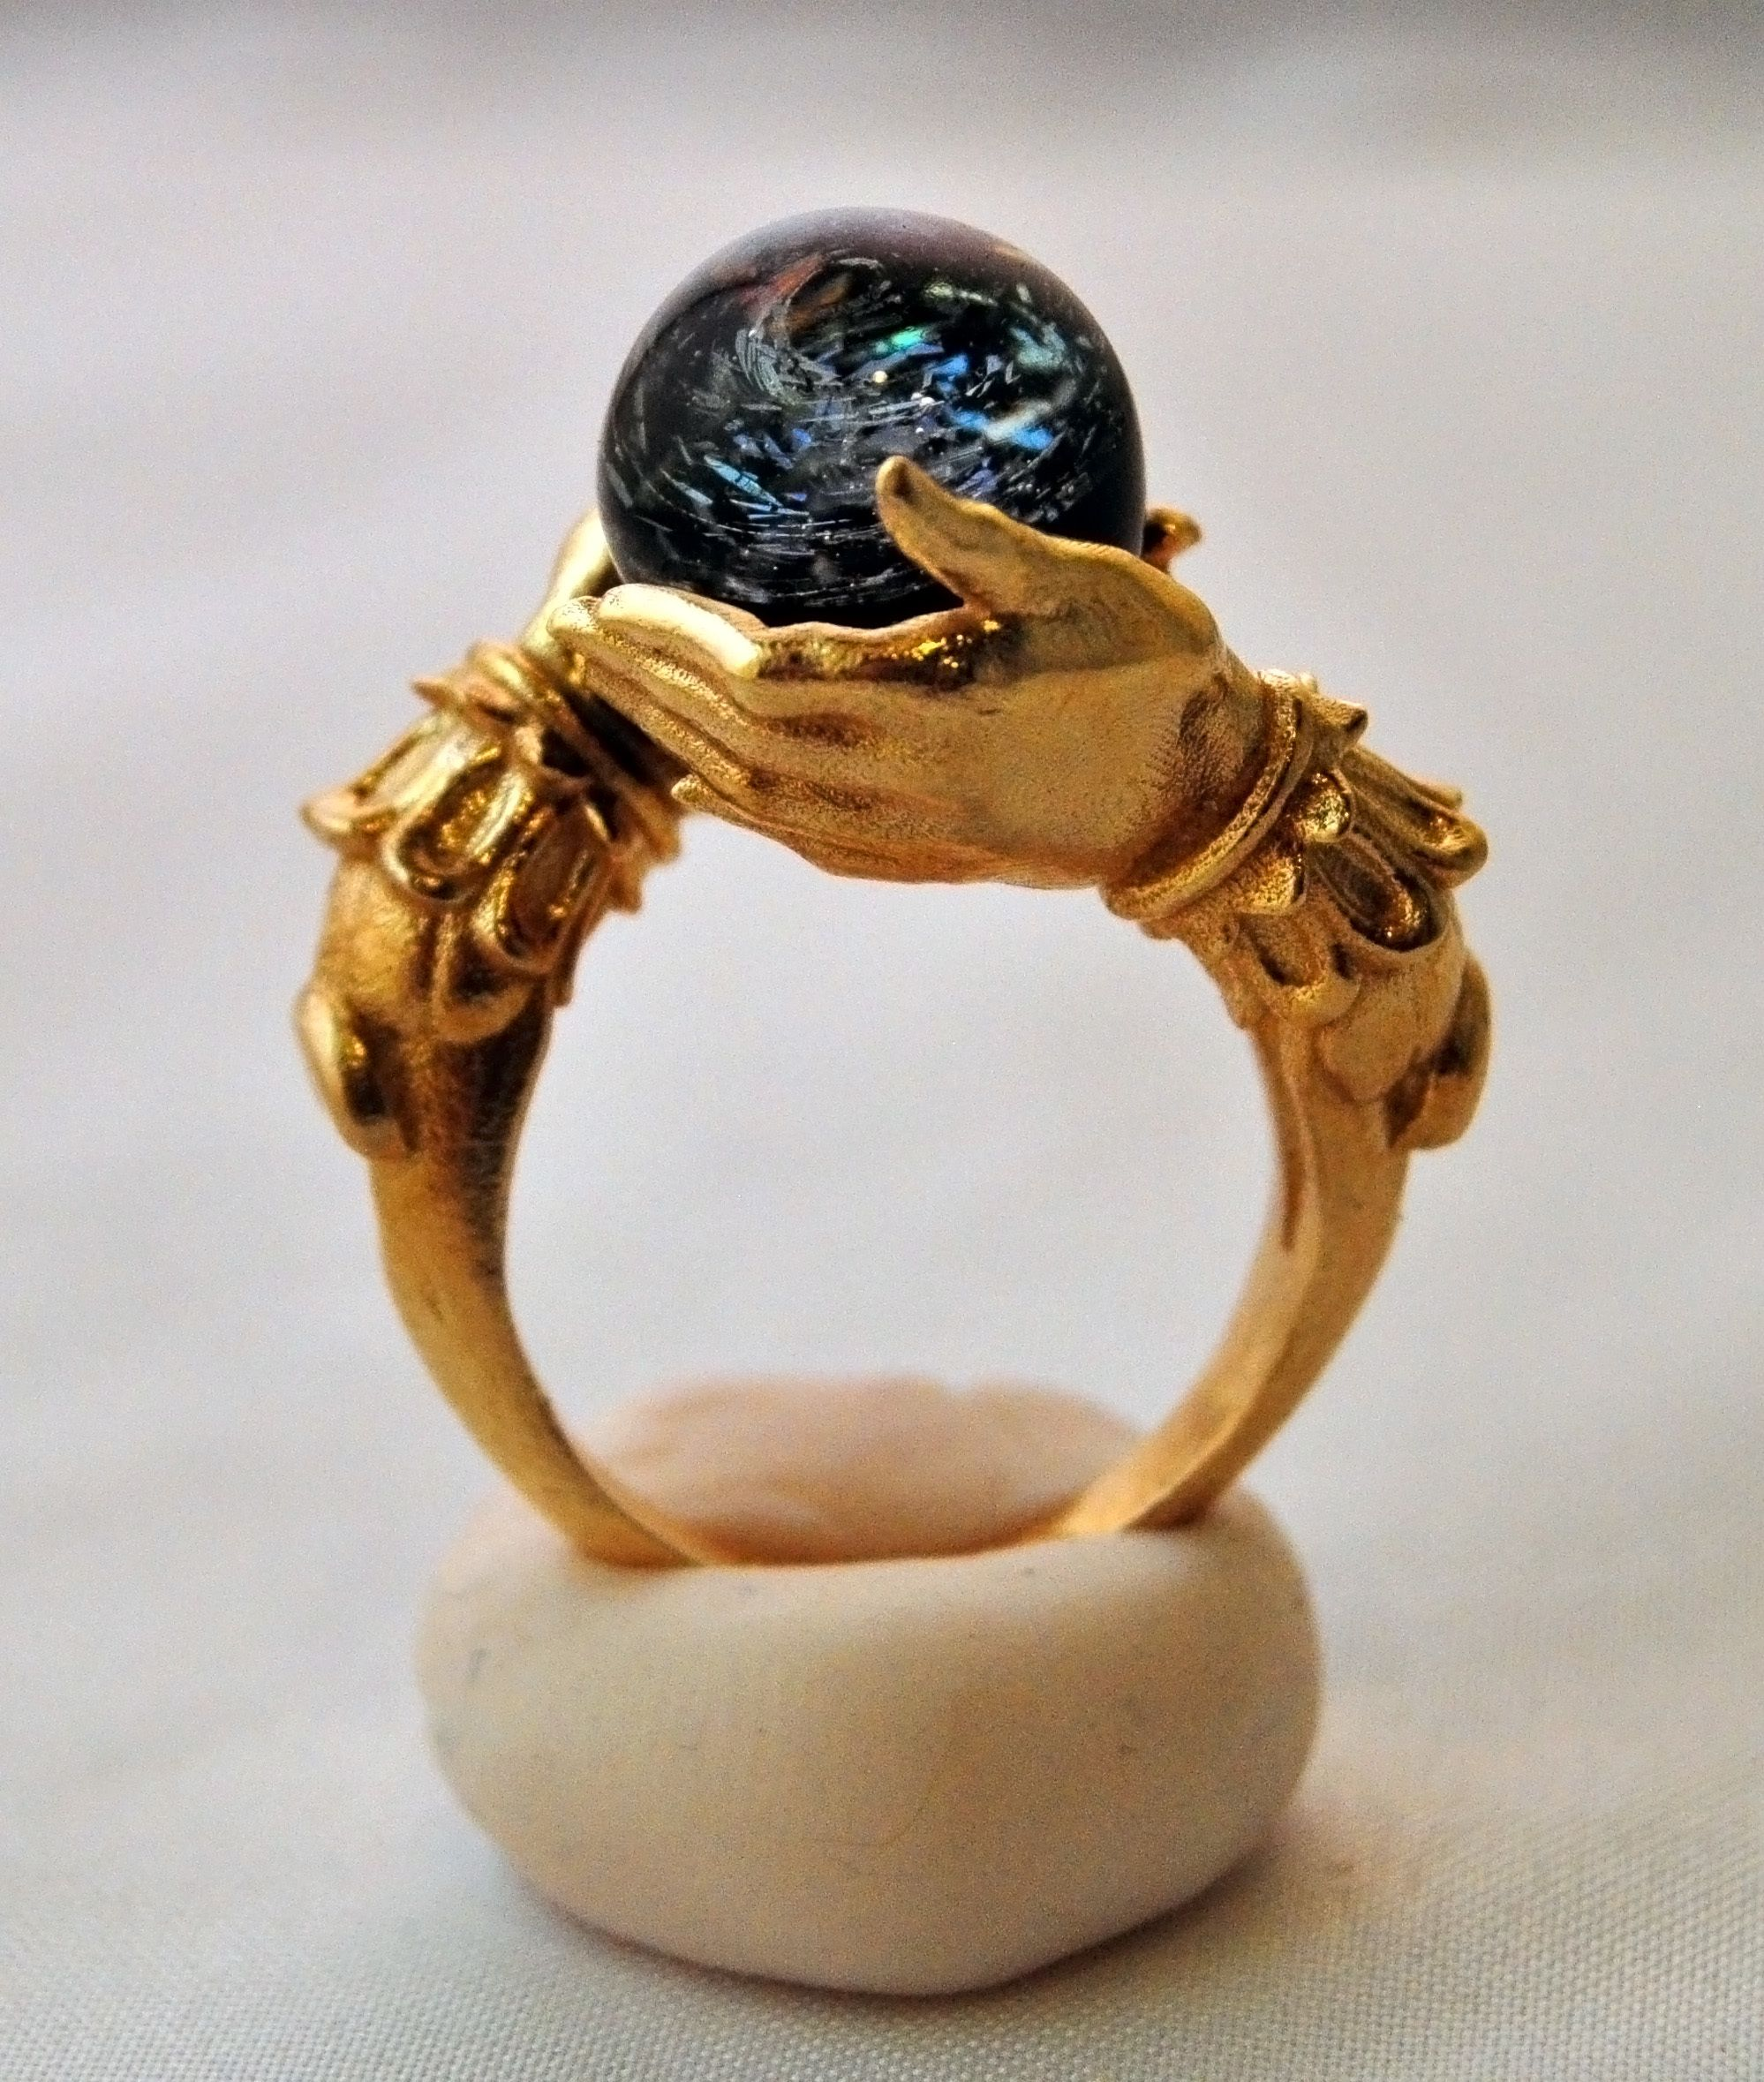 Omnia Oddities The Celestial Galaxy Oracle In Brass